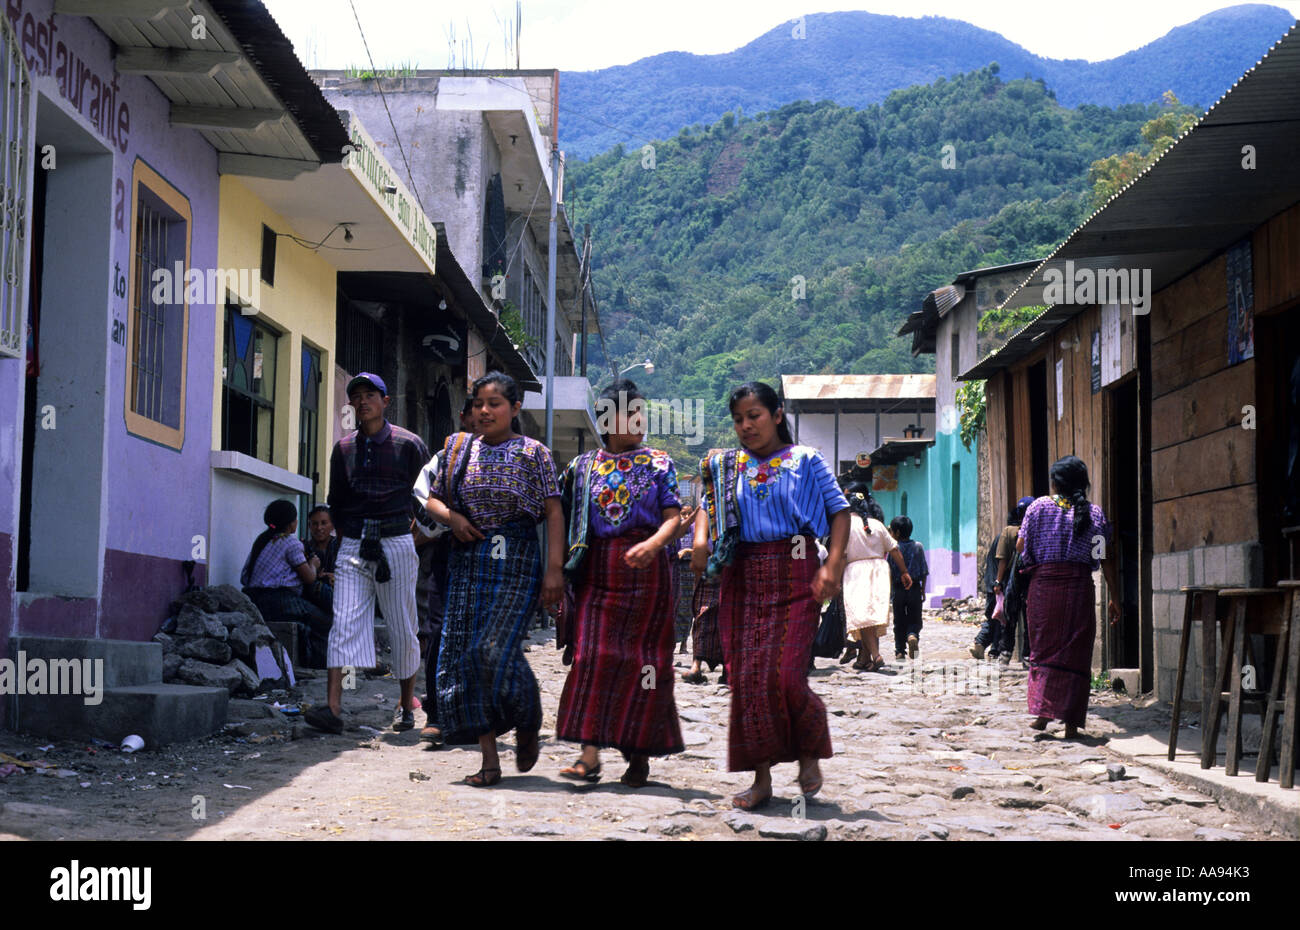 Typical street of Santiago Atitlan Lake Atitlan Guatemala - Stock Image